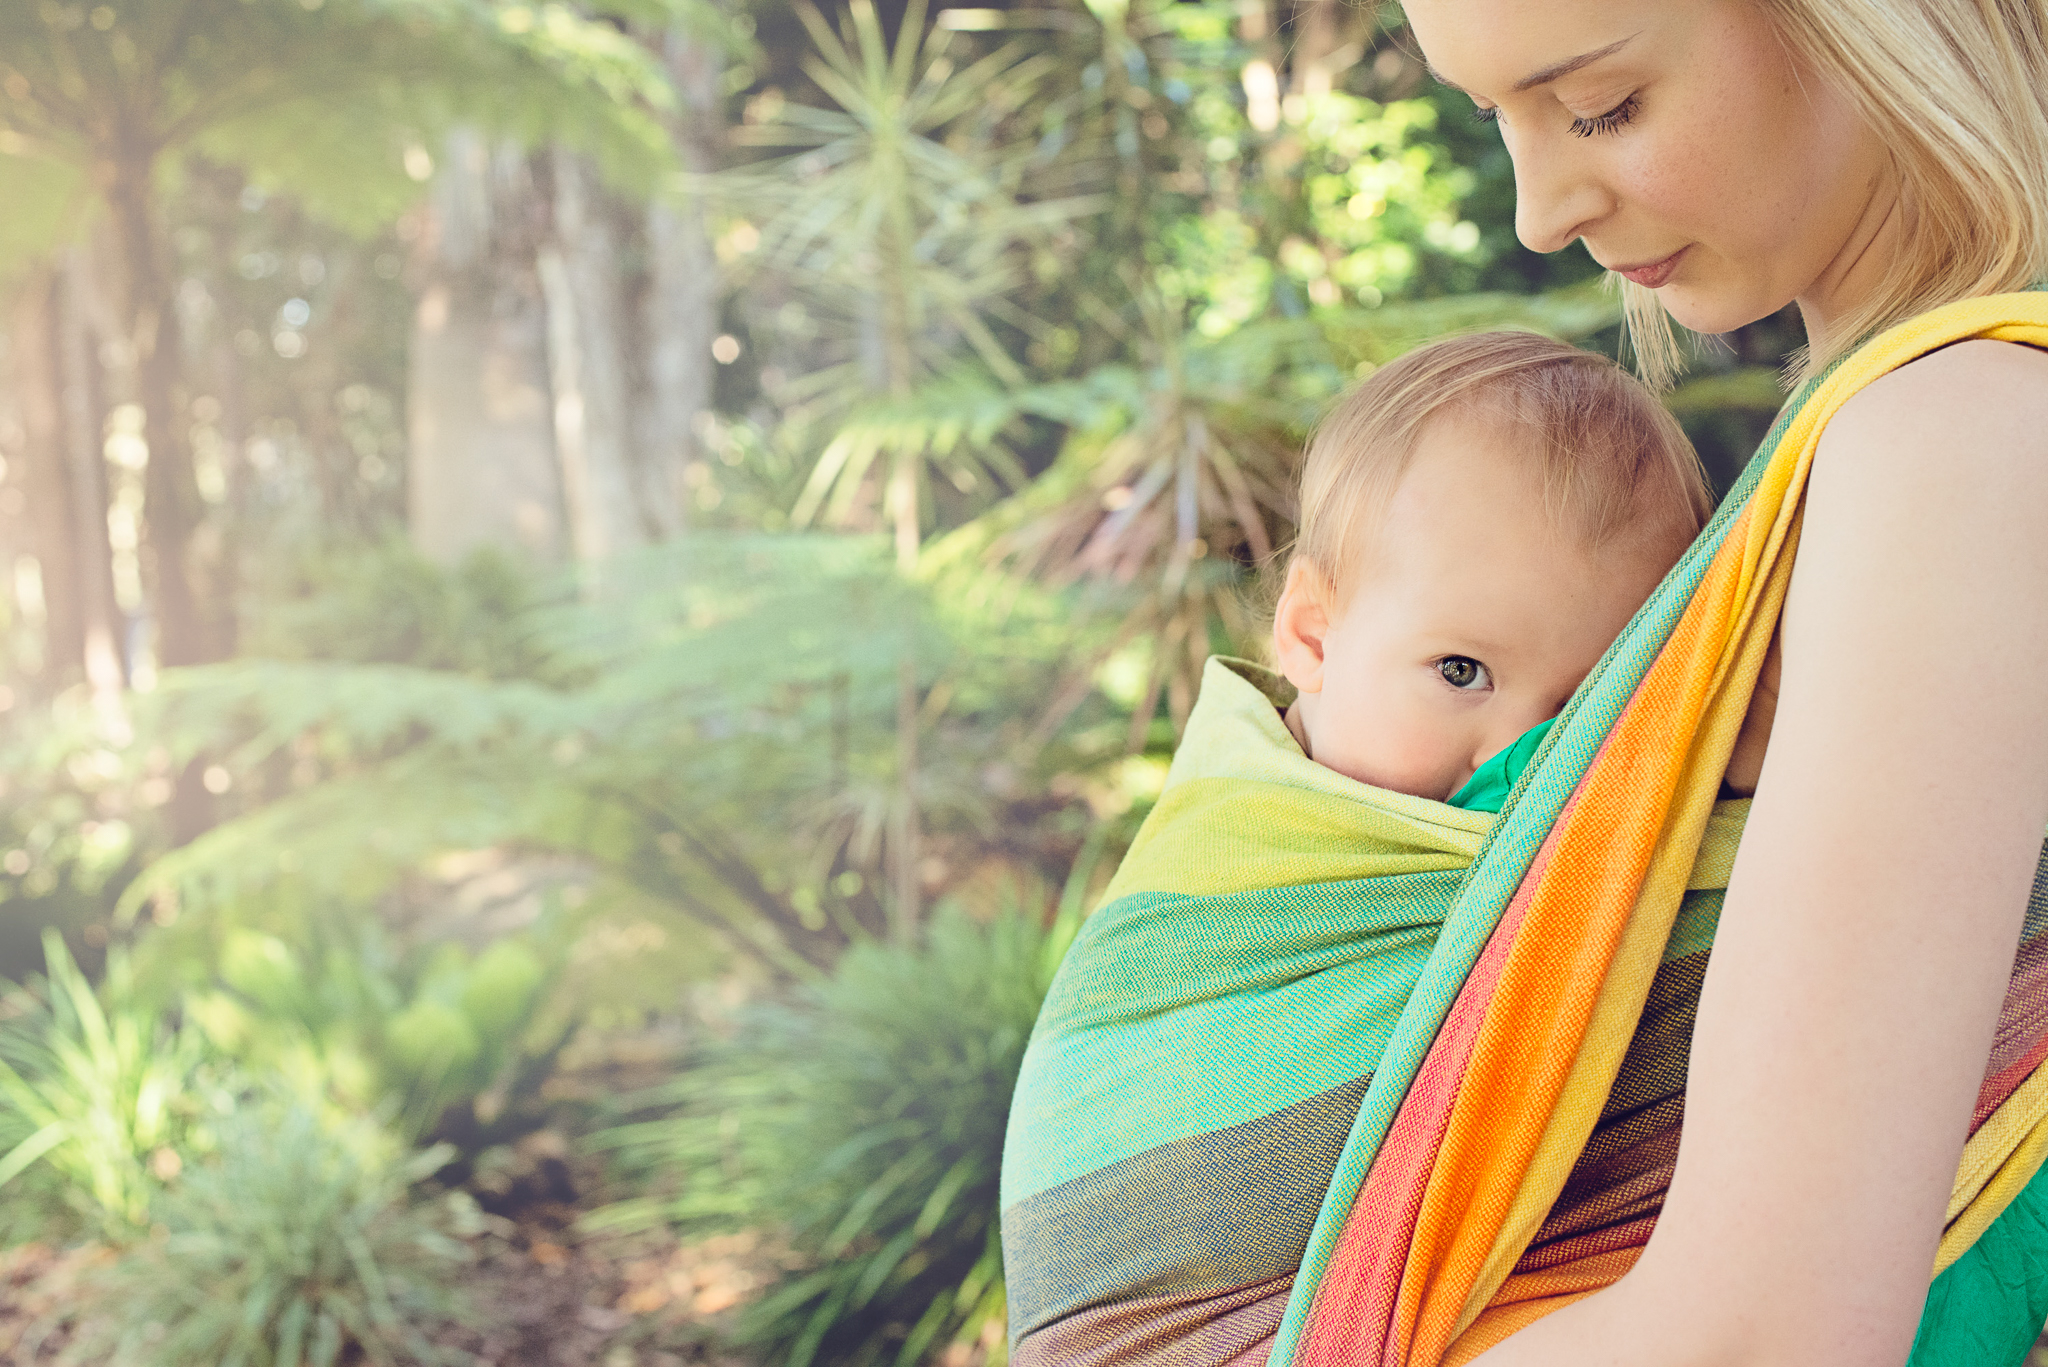 Belle Verdiglione Birth Photography Photographer Pregnancy Maternity Photoshoot Motherhood Family Babywearing